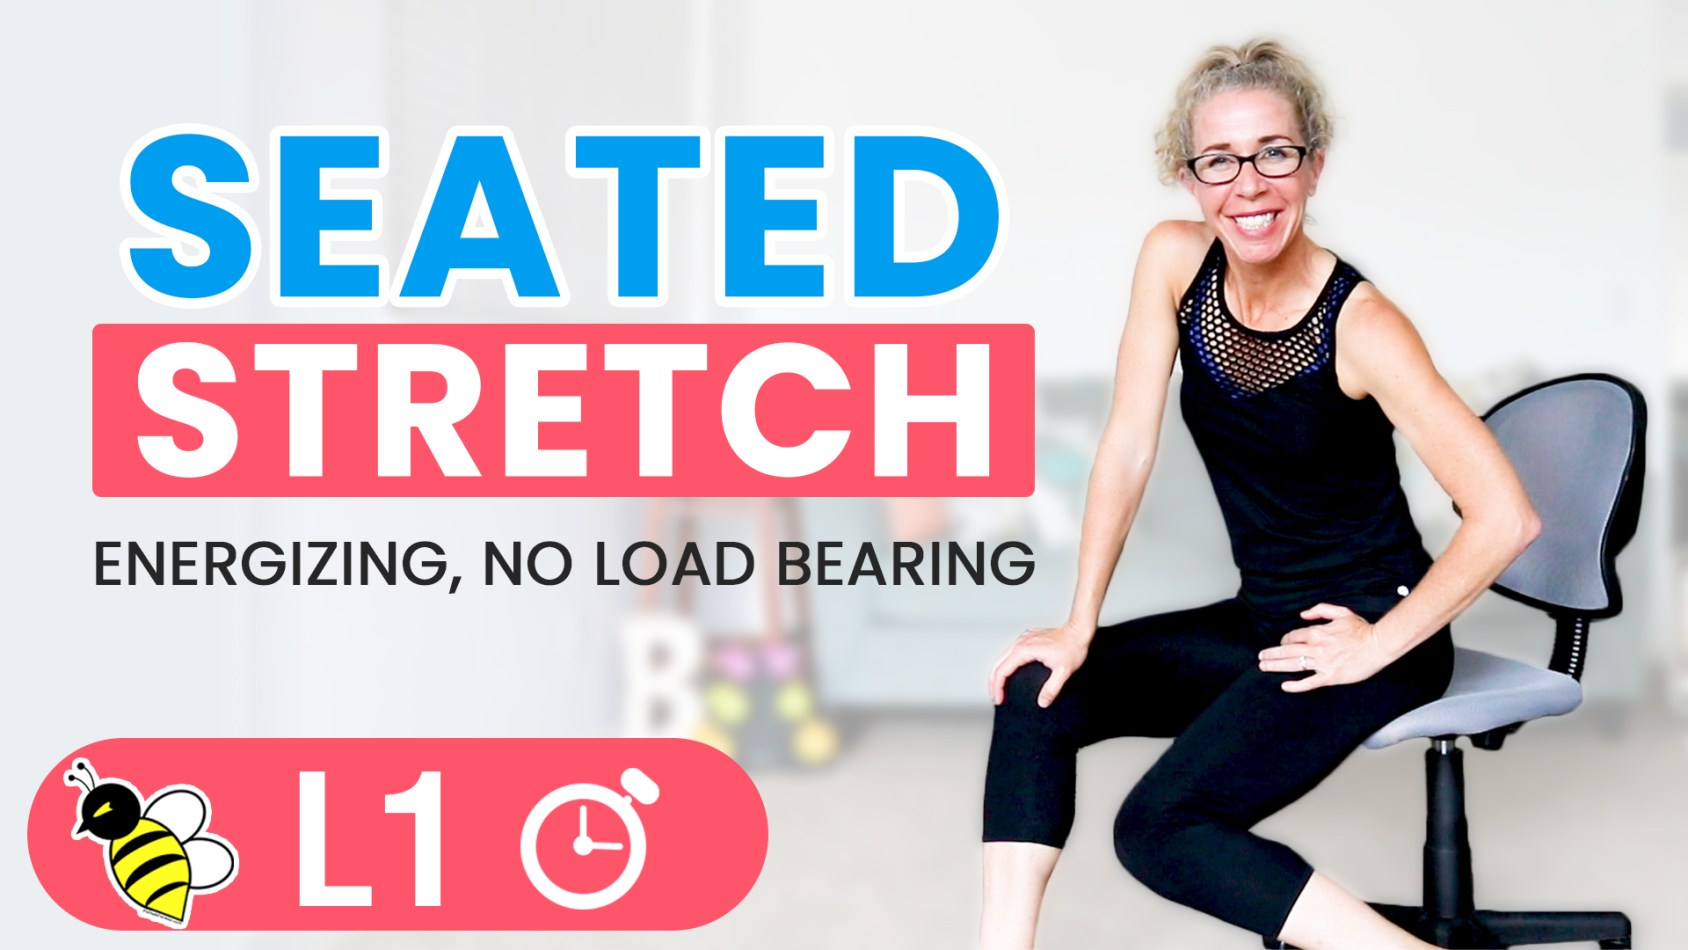 Seated STRETCH Warm Up, Cool Down or Desk Break Workout 5 Minute Friday FIX